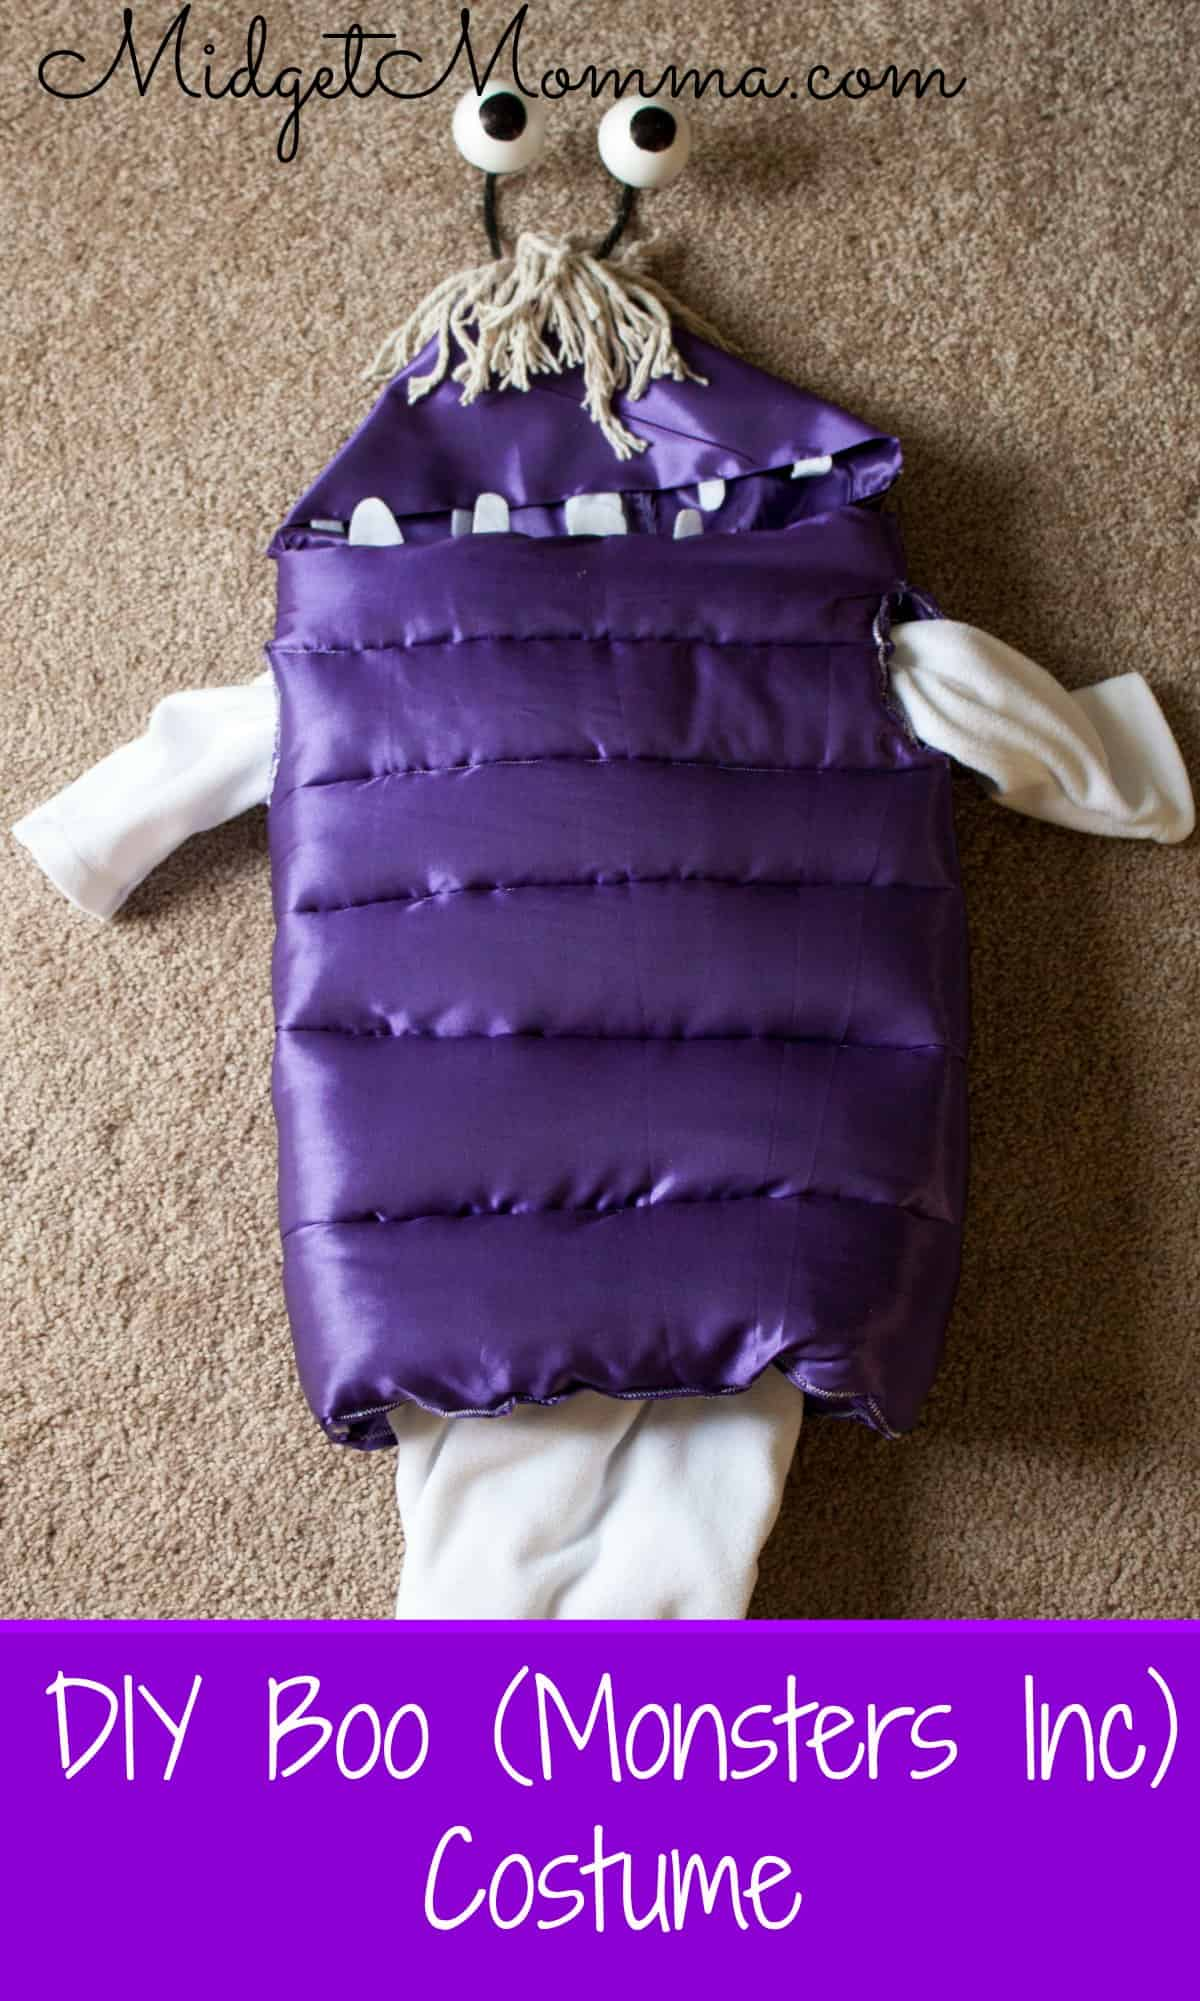 DIY Boo Monsters Inc costume